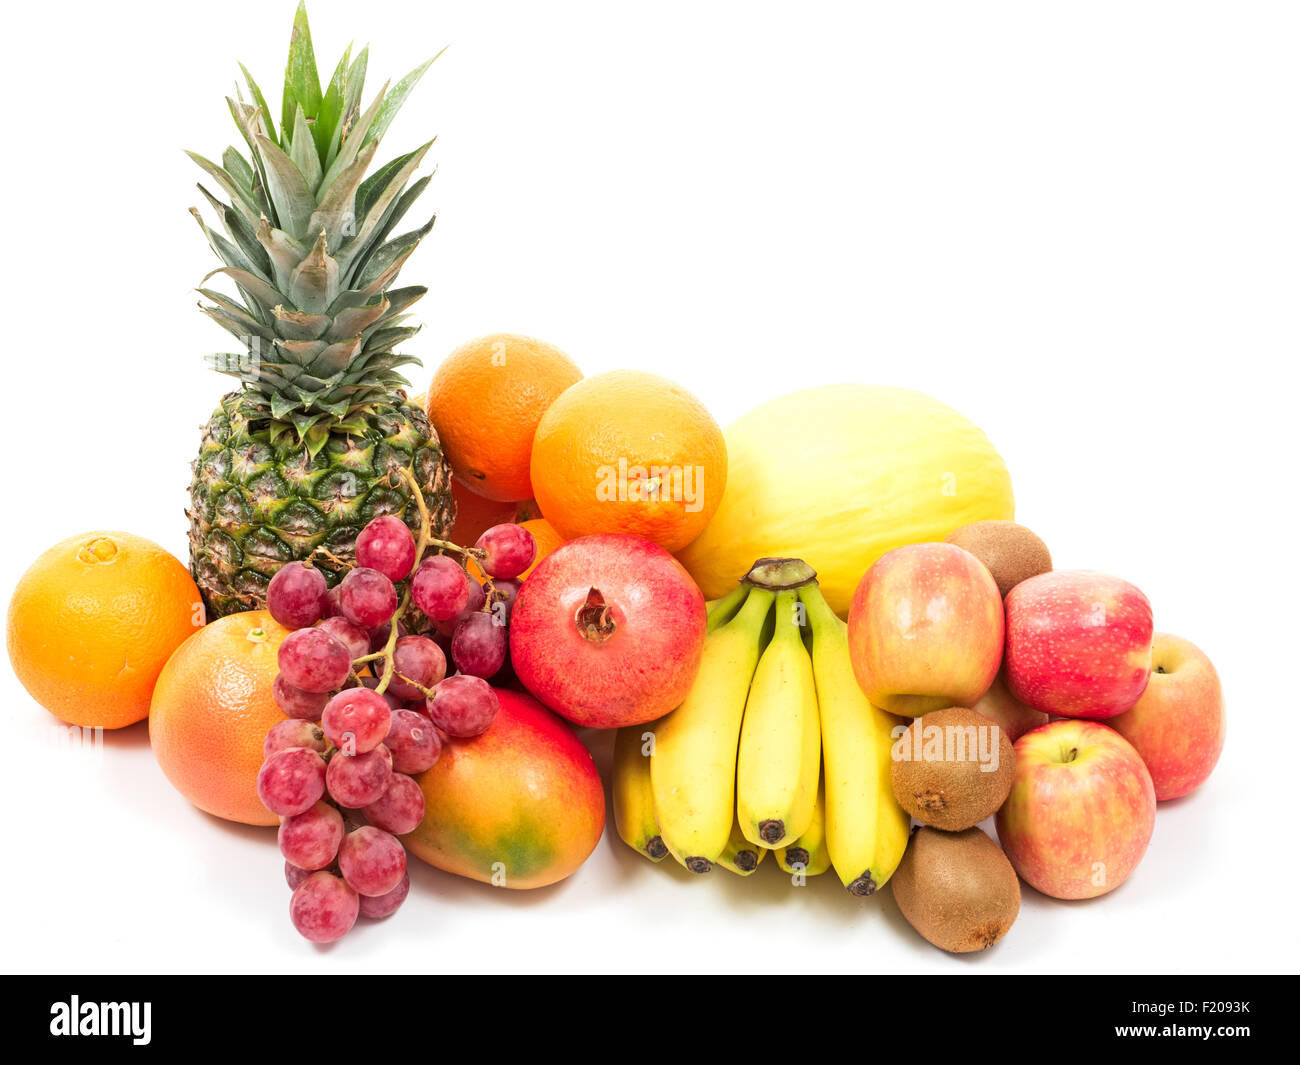 Obst - Stock Image